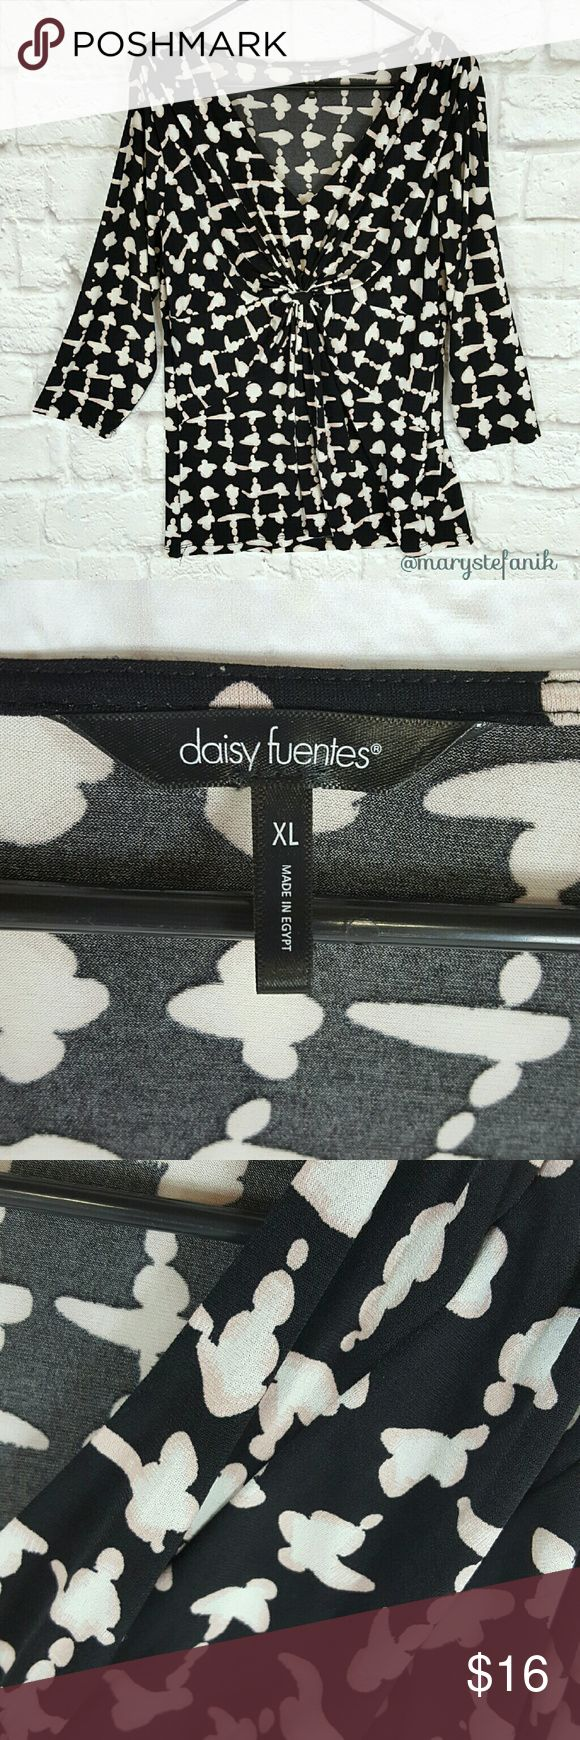 """Daisy Fuentes V Neck Stretchy Blouse Top size xL Daisy Fuentes V Neck Stretchy Blouse Top size xL in great used condition. Some very minor pilling. 95% Polyester, 5% Spandex.   Waist from Seam to Seam: 18"""" Length from Top: 27""""  Please let me know if you have any questions. Happy Poshing! Daisy Fuentes Tops Blouses"""